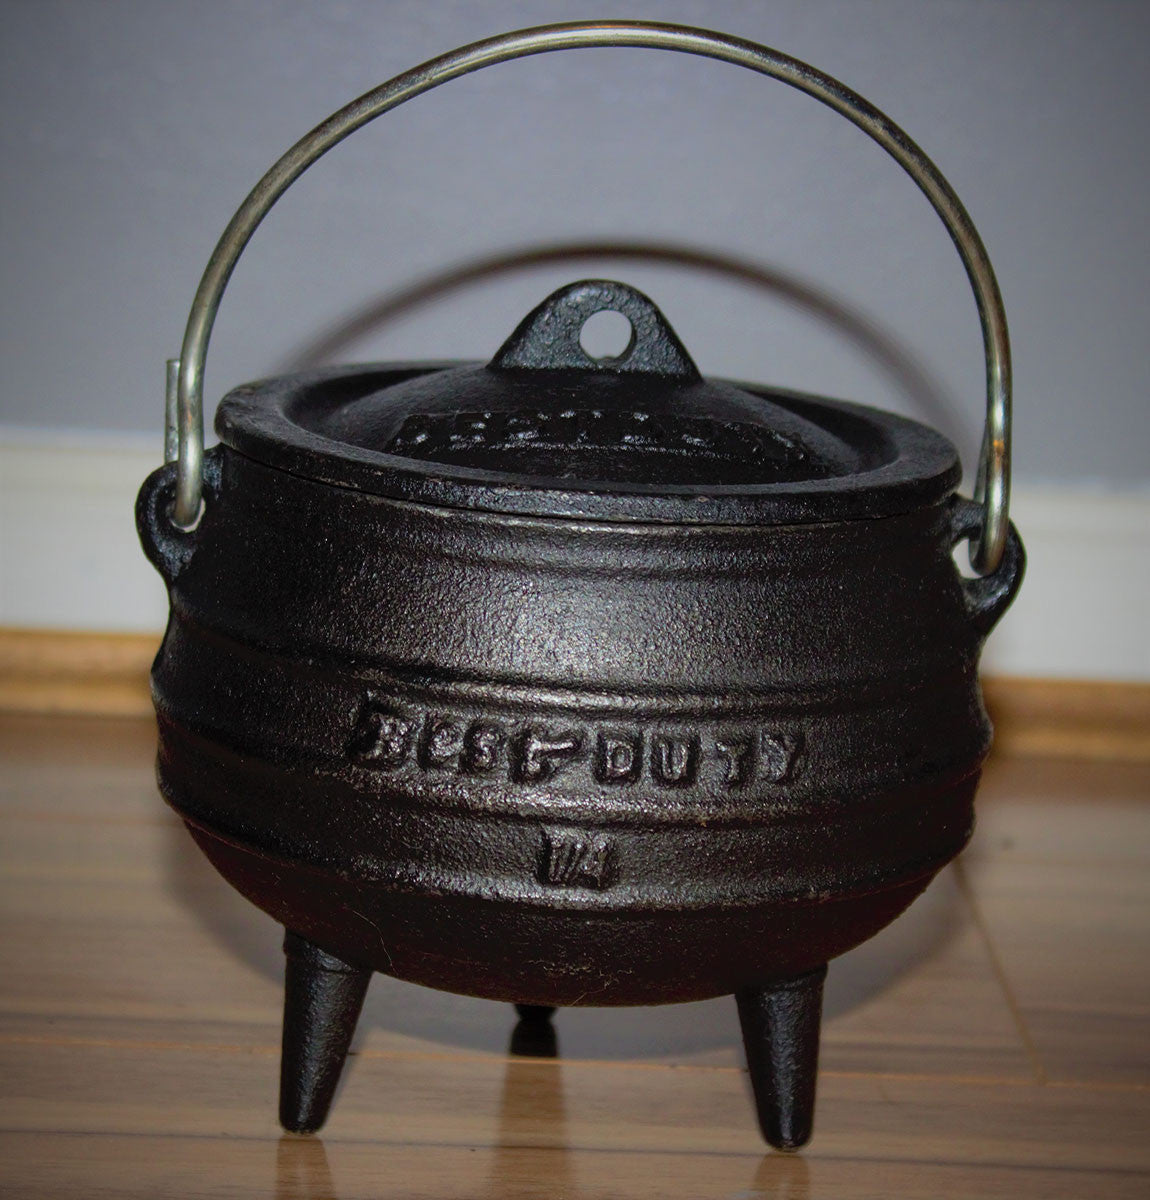 The cauldron is a feminine symbol, as seen in the tale of Cerridwen's cauldron, representing rebirth and renewal and the womb and the tomb ect…   Size: ¼ (height 10cm, mouth circumference 10cm)  Volume: 700ml  Weight: 1.4kg   Please note: The cauldrons are made from cast iron and have been treated making them safe for spell work and cooking. They have also been pre-sealed with a quality vegetable oil to prevent rust. If looked after correctly these cauldrons will last many many years to come.